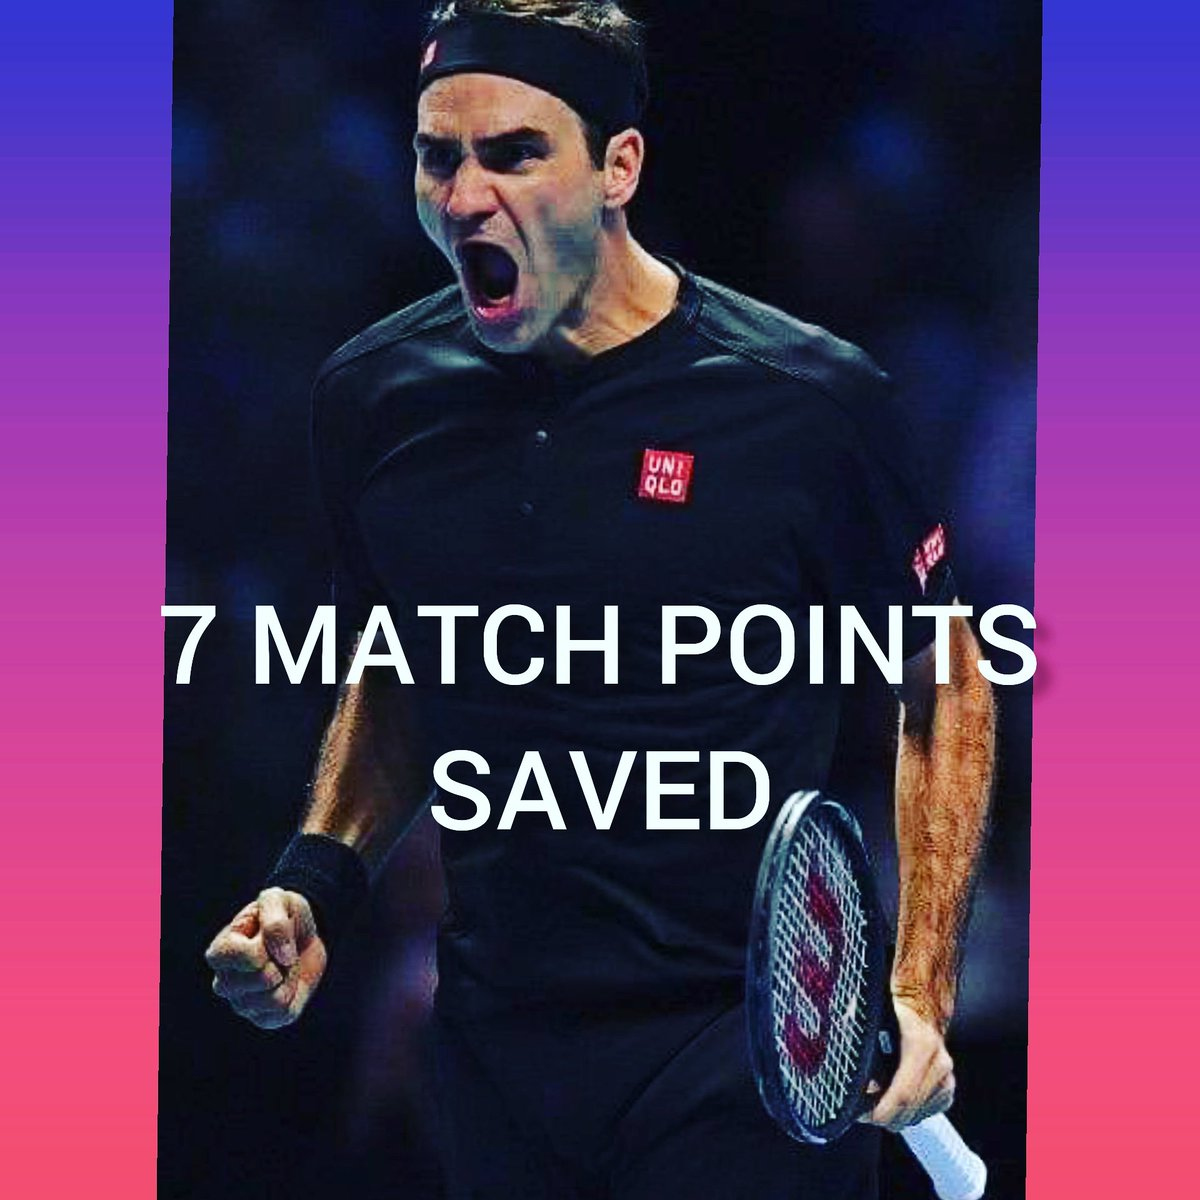 [when #federer saved 7 #matchpoints ] https://youtu.be/5LyBEZbOllY  #tennis #tennisvideo #tenniscourt #tennistraining #tennispractice #training #tennistime  #tennispro #tennispassion    #tennislove #tennisislife #tennisball #sport #теннис  #tennisworld  #instatennis #테니스 #tênis pic.twitter.com/Ihn4SqwPzT